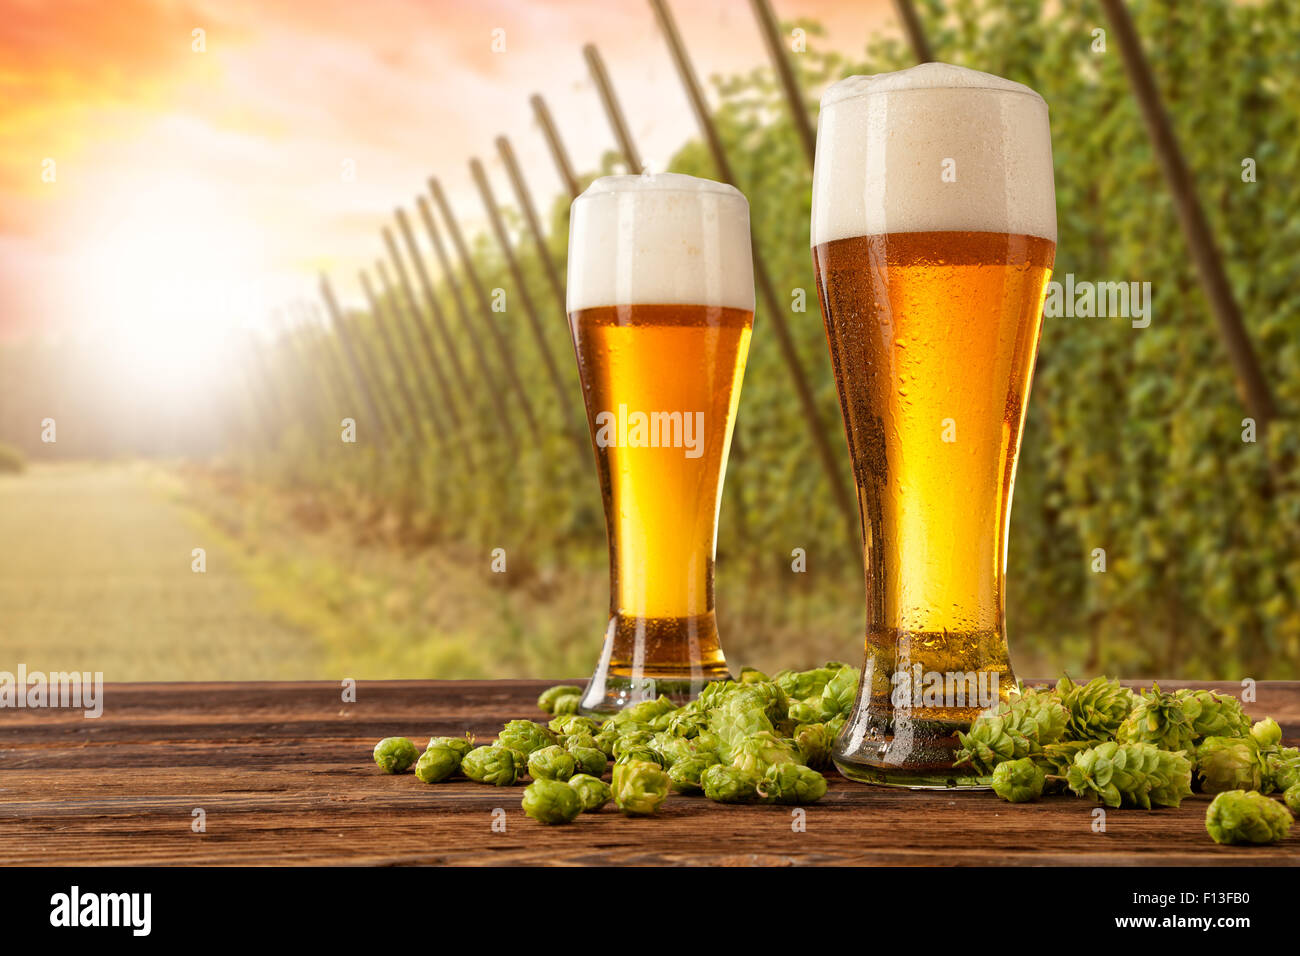 Beer glasses with hop-field on background - Stock Image